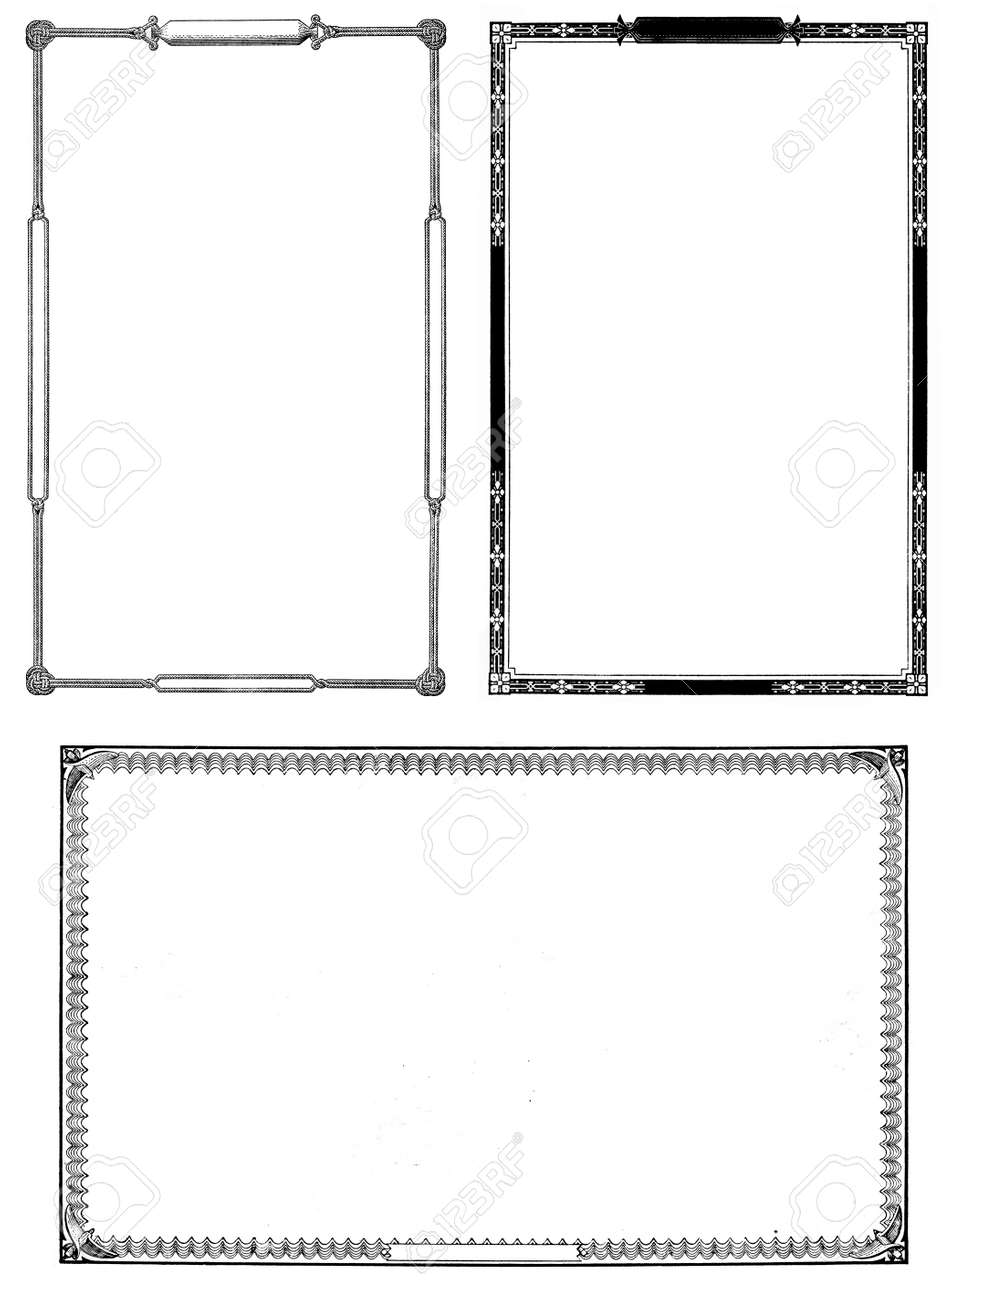 Collection Of Three Moderately Distressed Frames From The Nineteenth ...